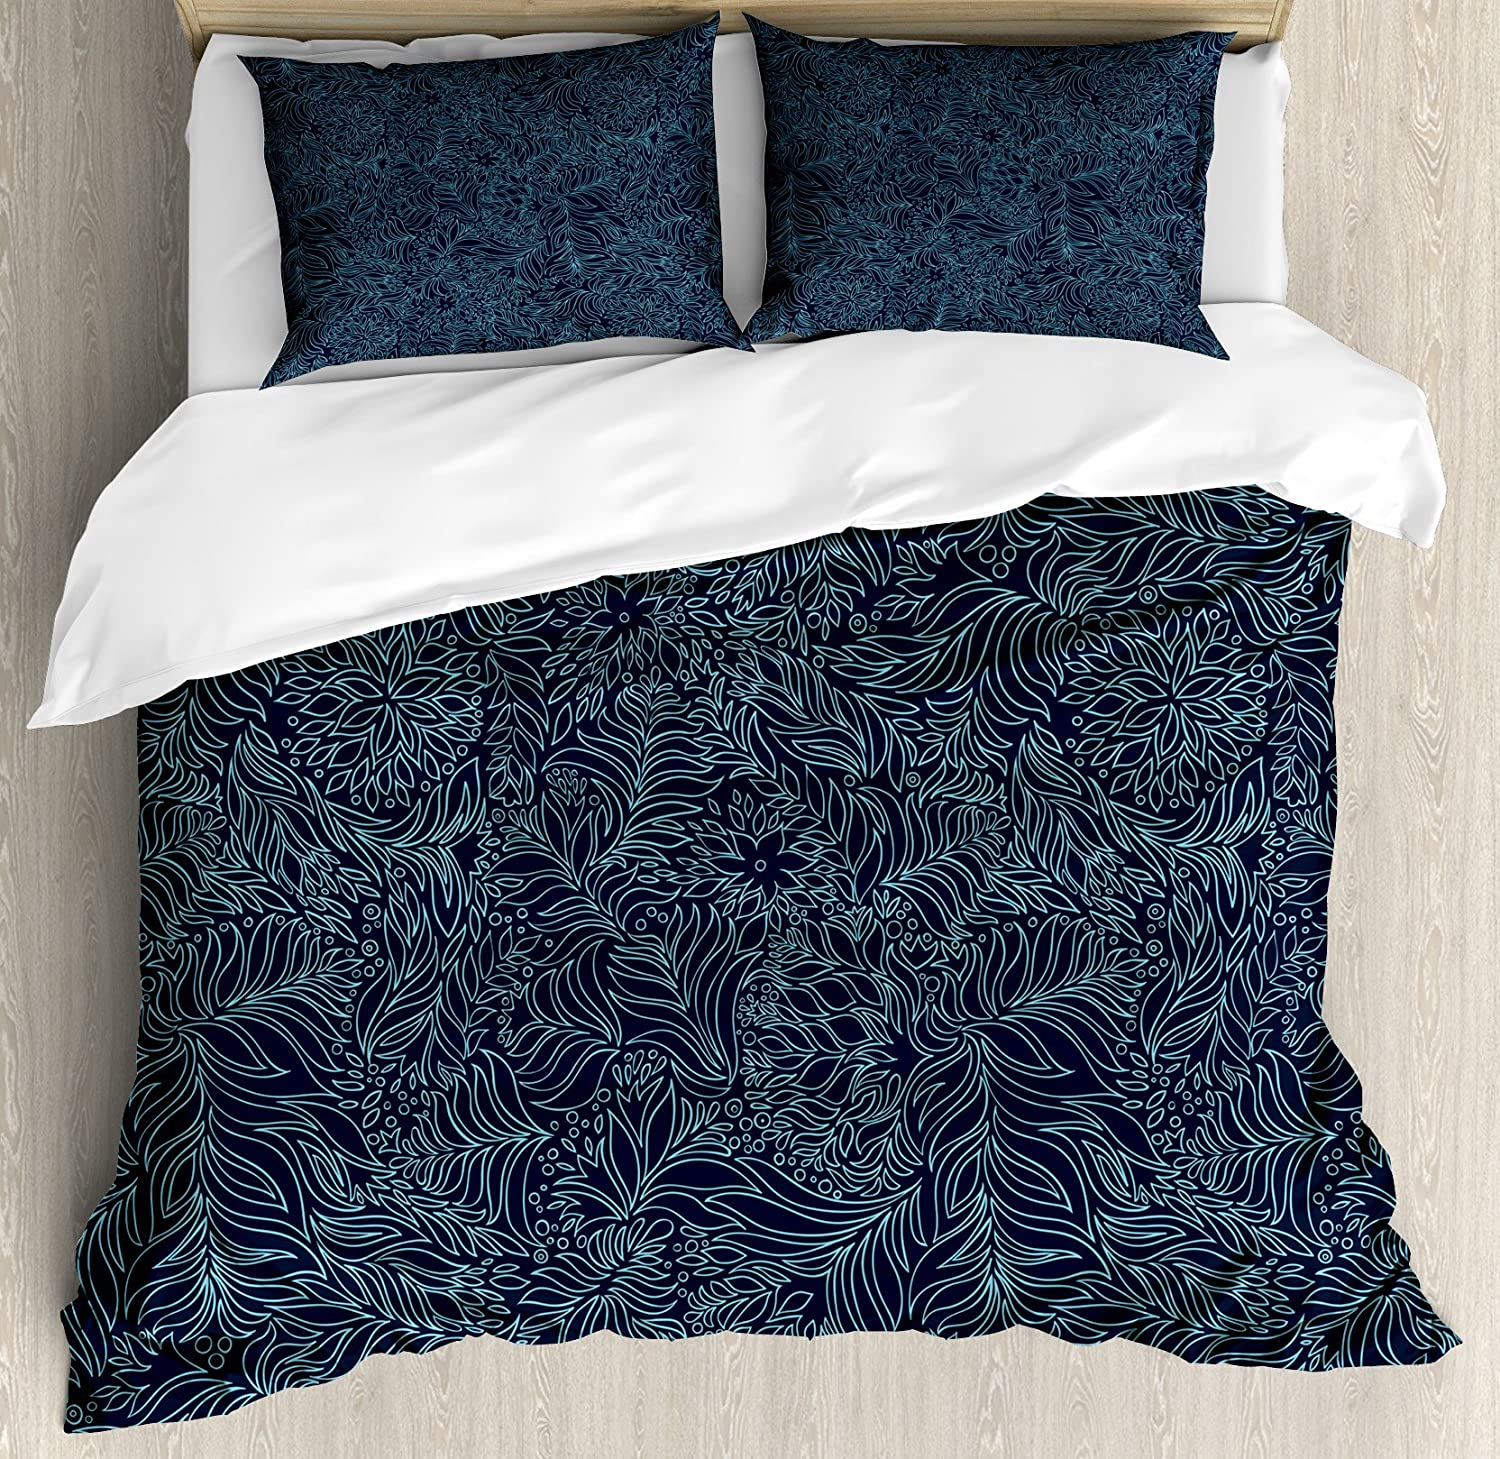 Ambesonne Navy and Teal Duvet Cover Set, Abstract Flourish Nature Inspired Pattern Leaves Blossoms, Decorative 3 Piece Bedding Set with 2 Pillow Shams, Queen Size, Dark Blue Turquoise